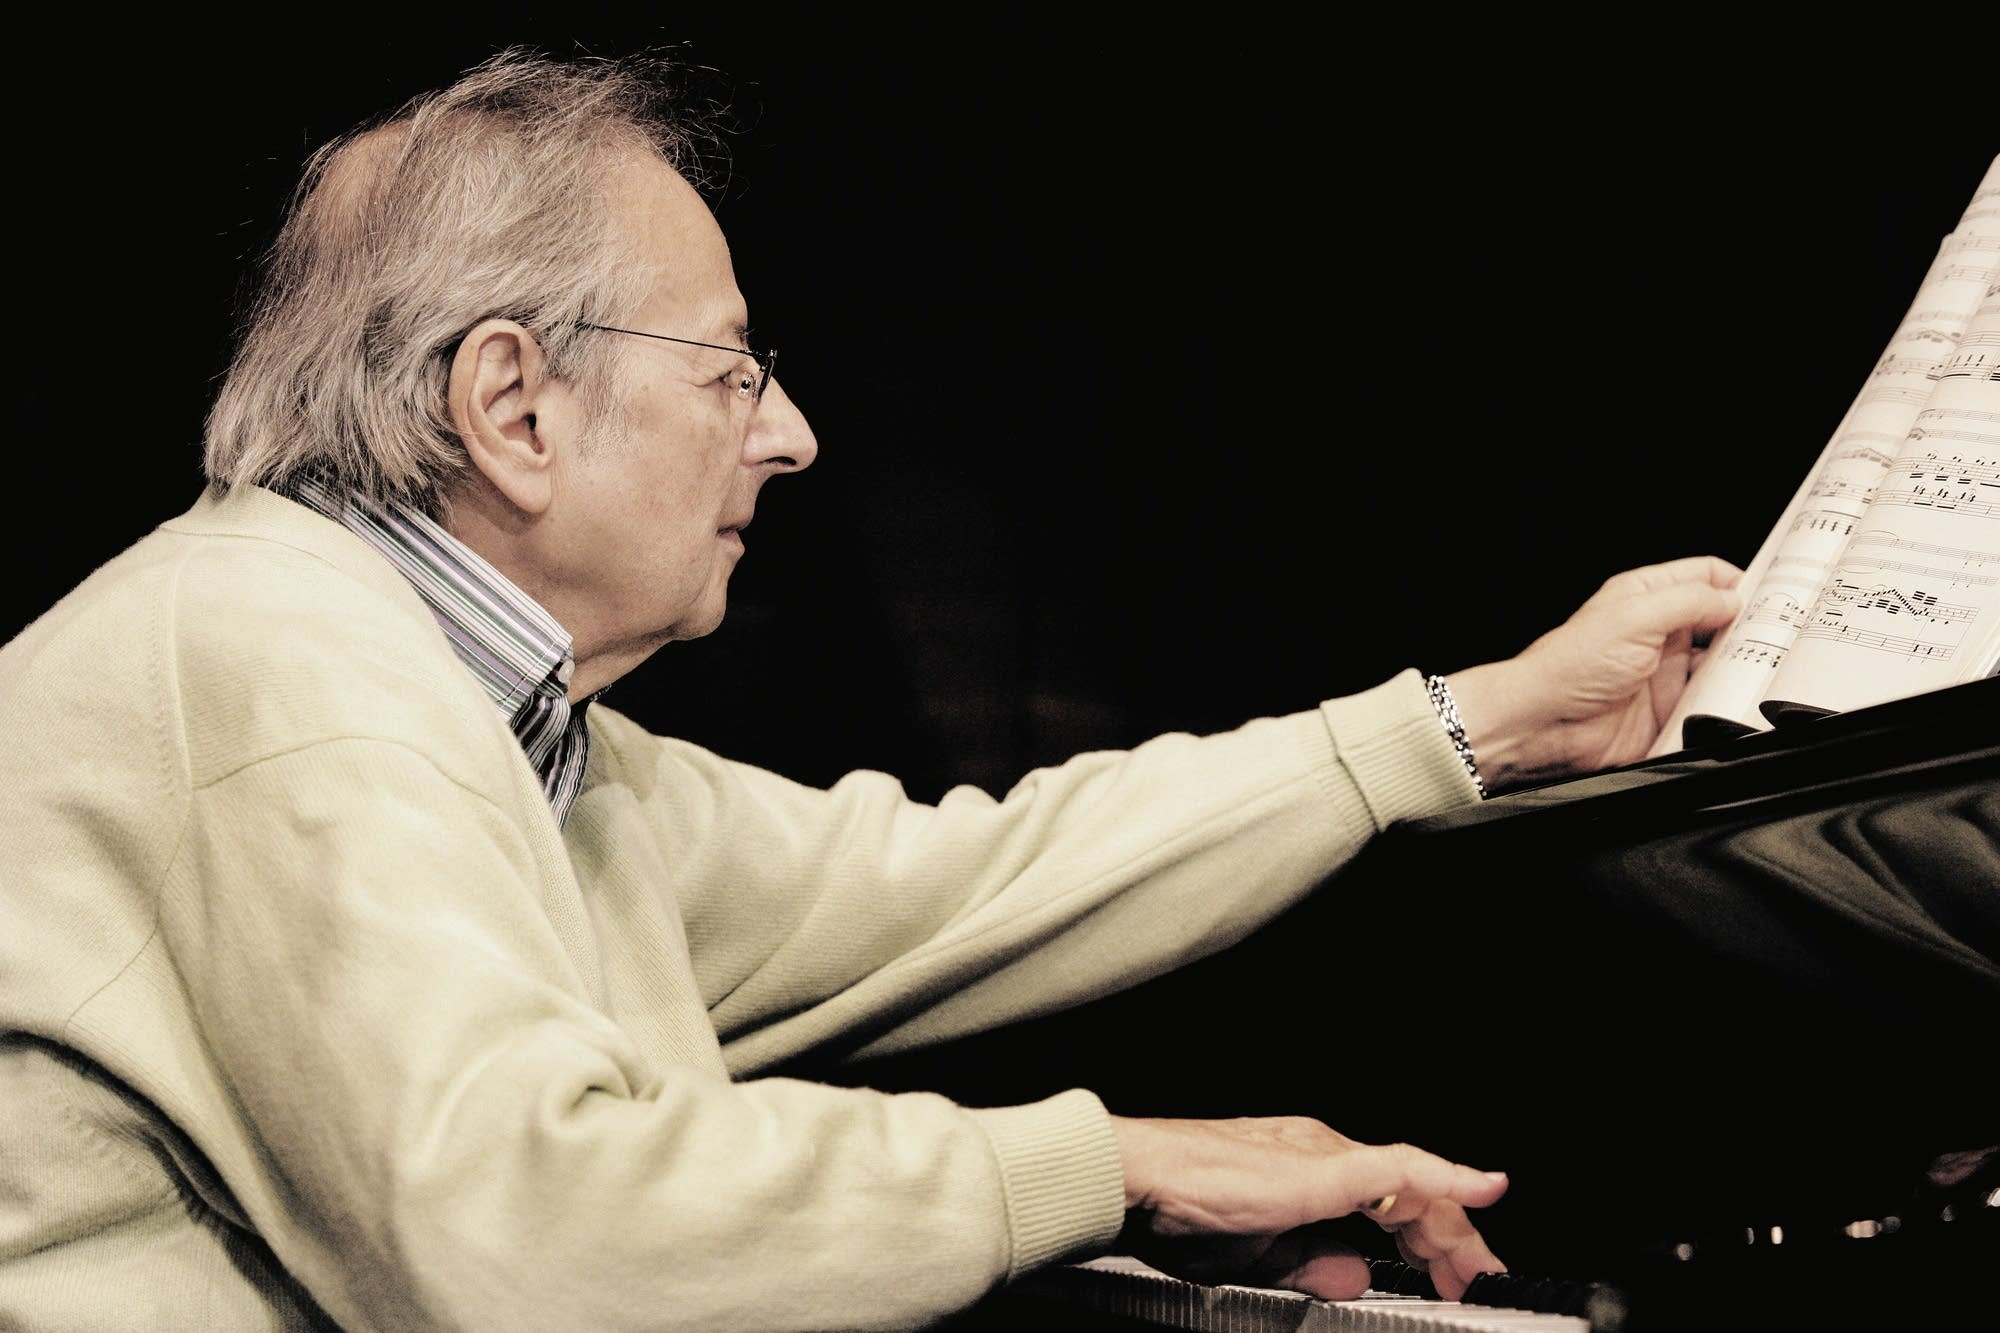 Andre Previn at the piano.